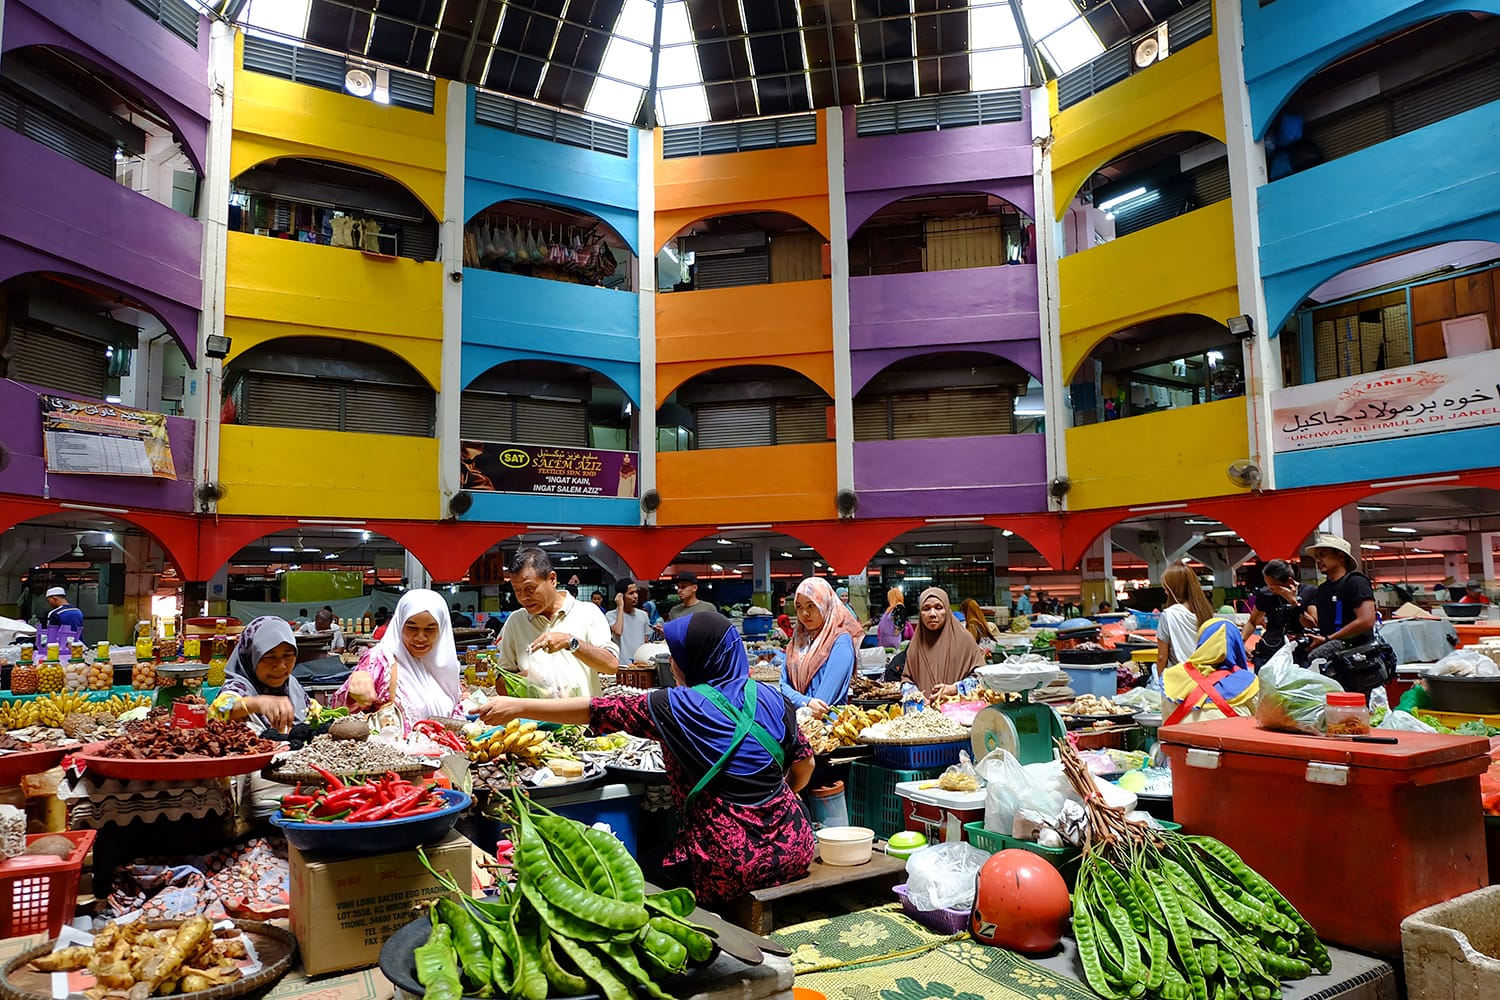 Here is the normal situation in Siti Khadijah Market which is the focus of tourists and locals to buy their daily necessities. Bharu, Malaysia